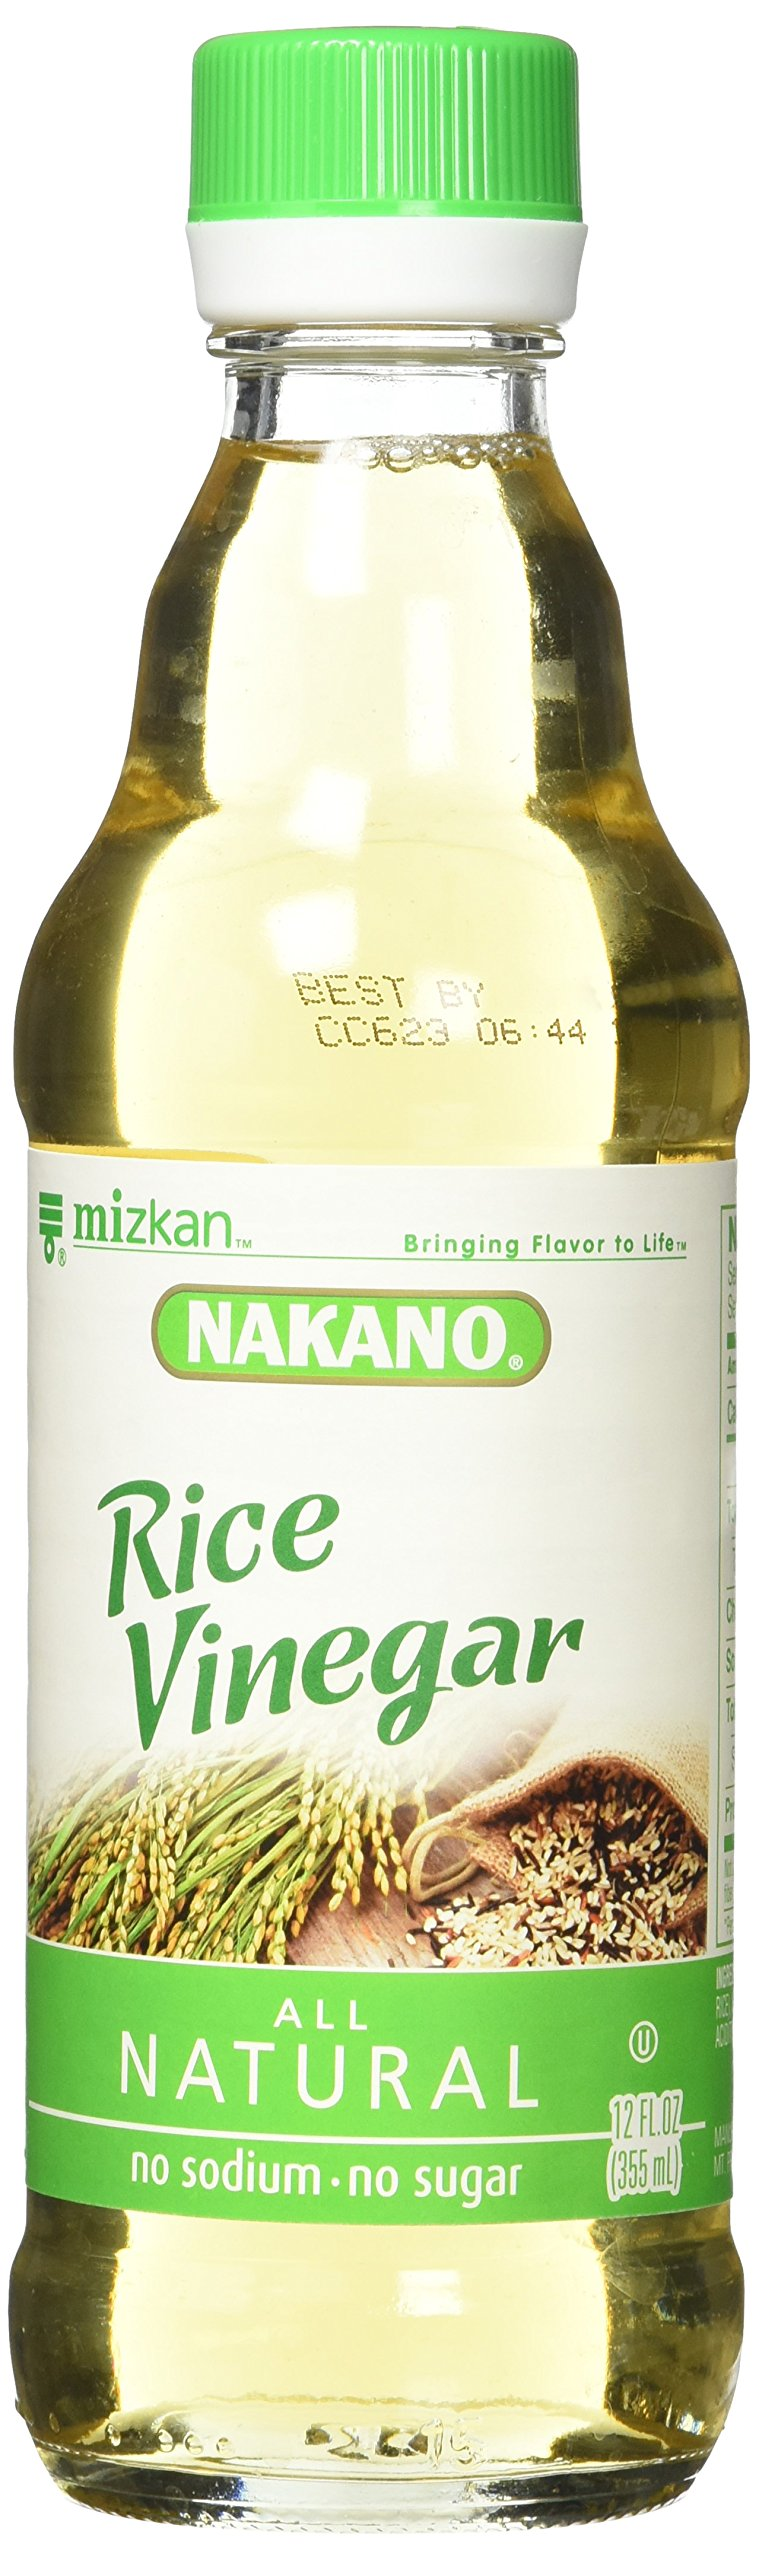 Nakano Natural Rice Vinegar, 12 fl oz